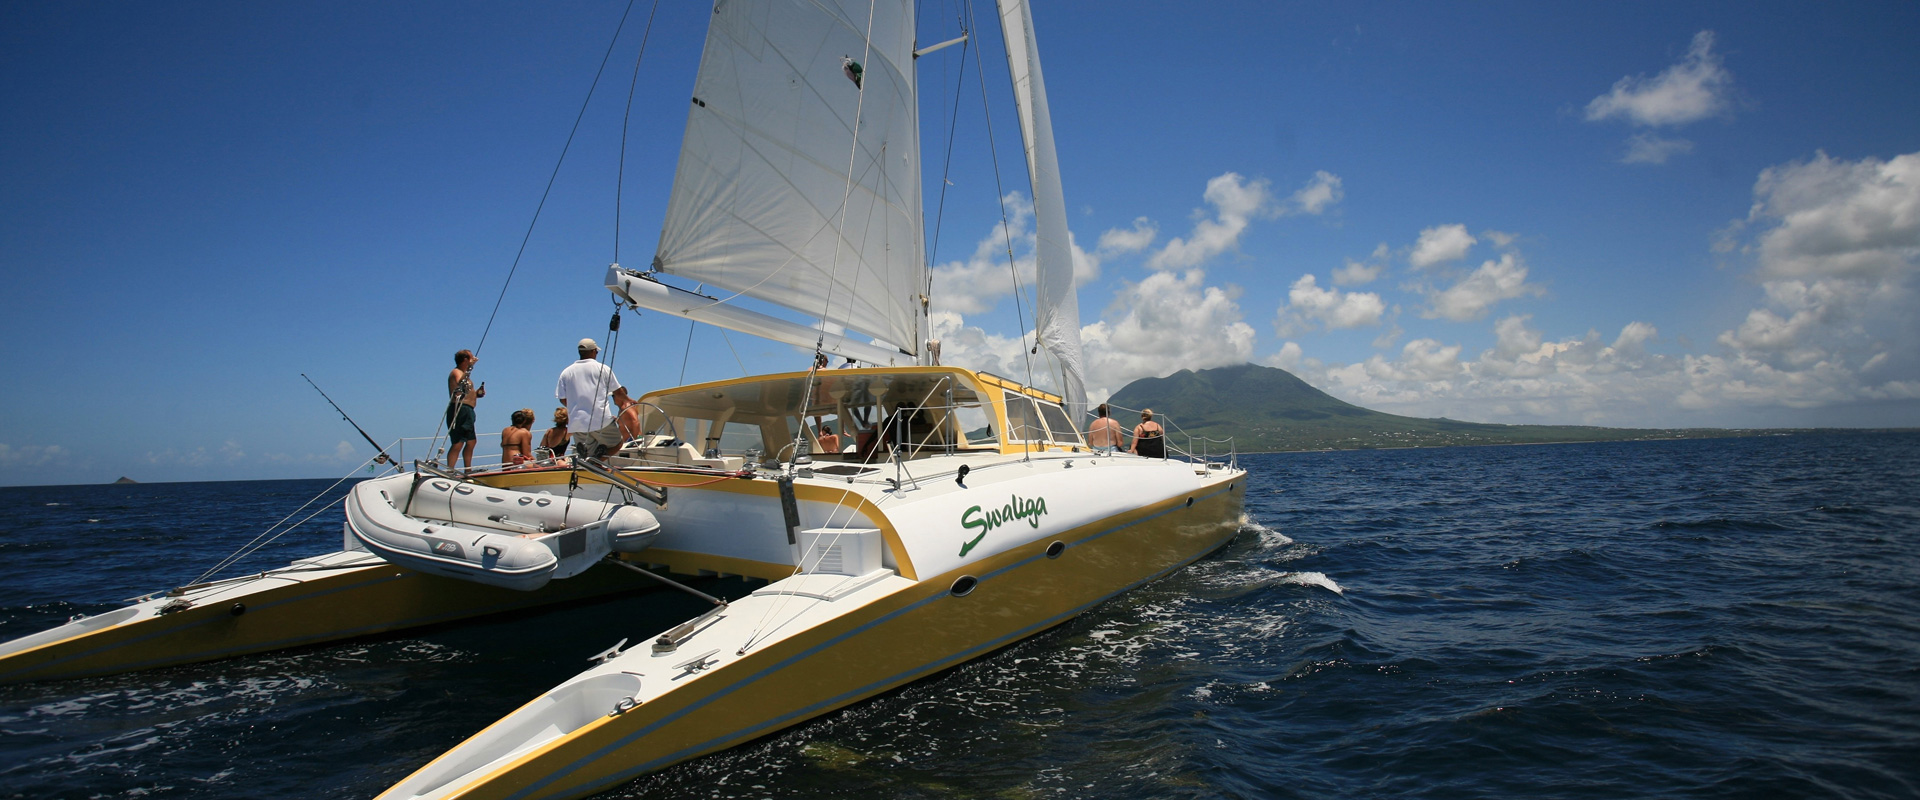 Catamaran Cruise in St. Kitts and Nevis